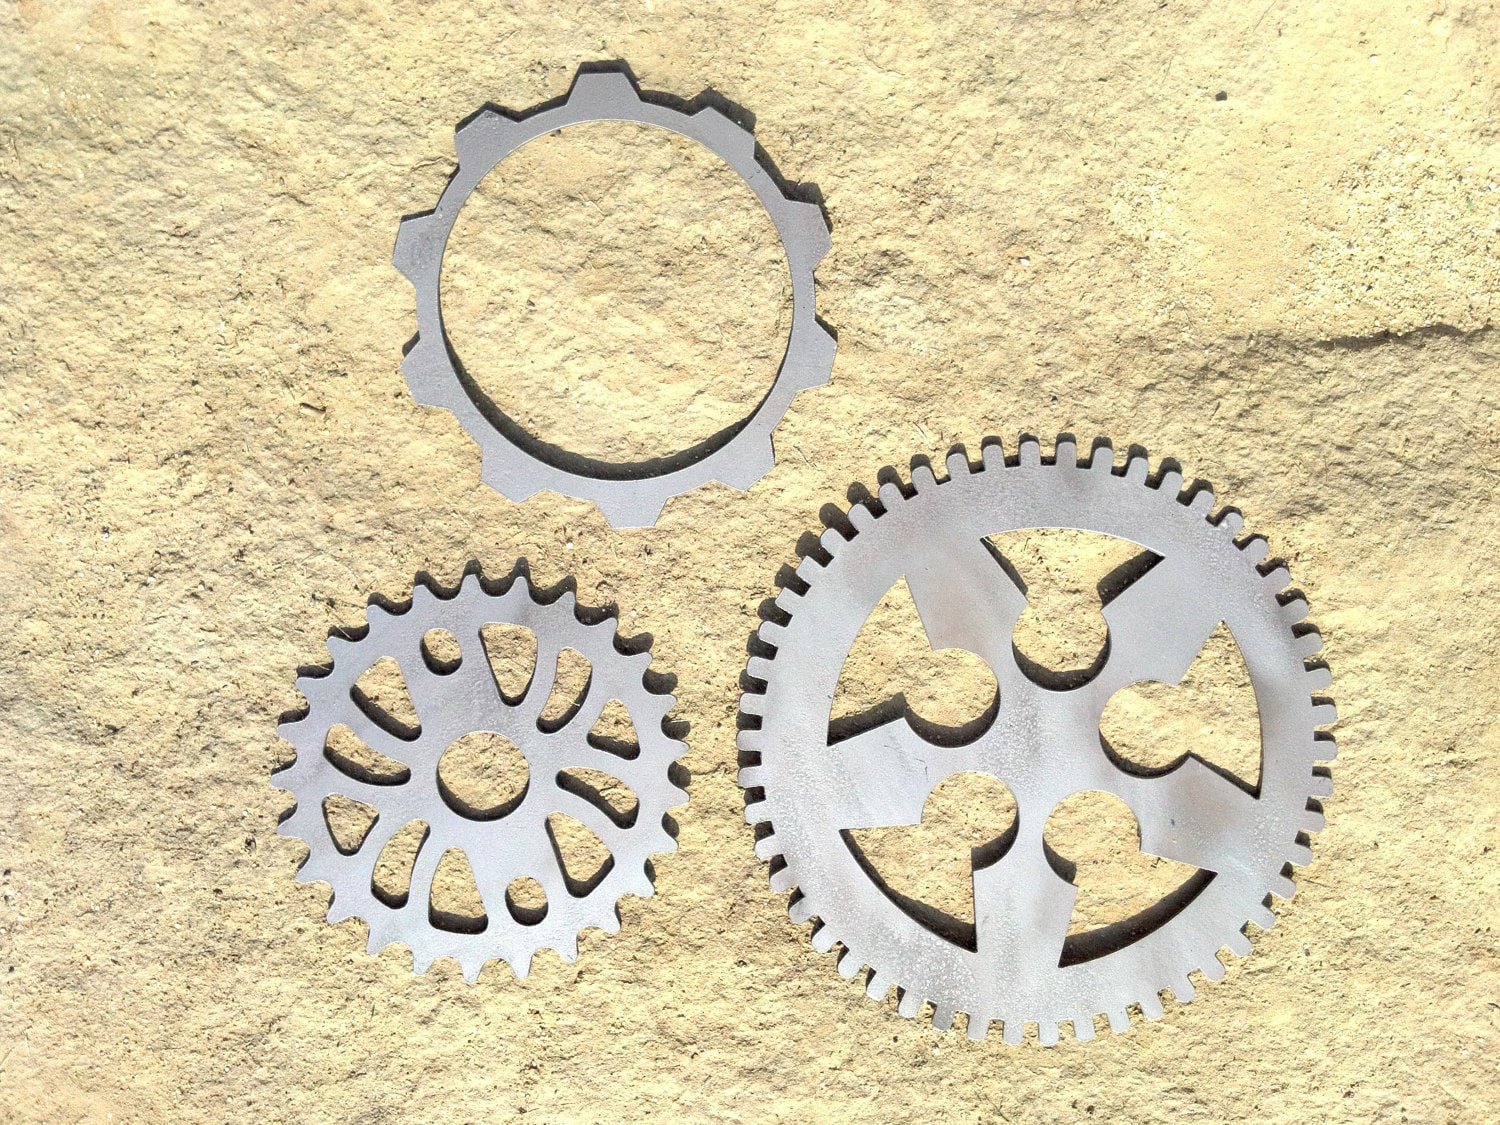 Enchanting Gears Wall Art Mold - All About Wallart - adelgazare.info